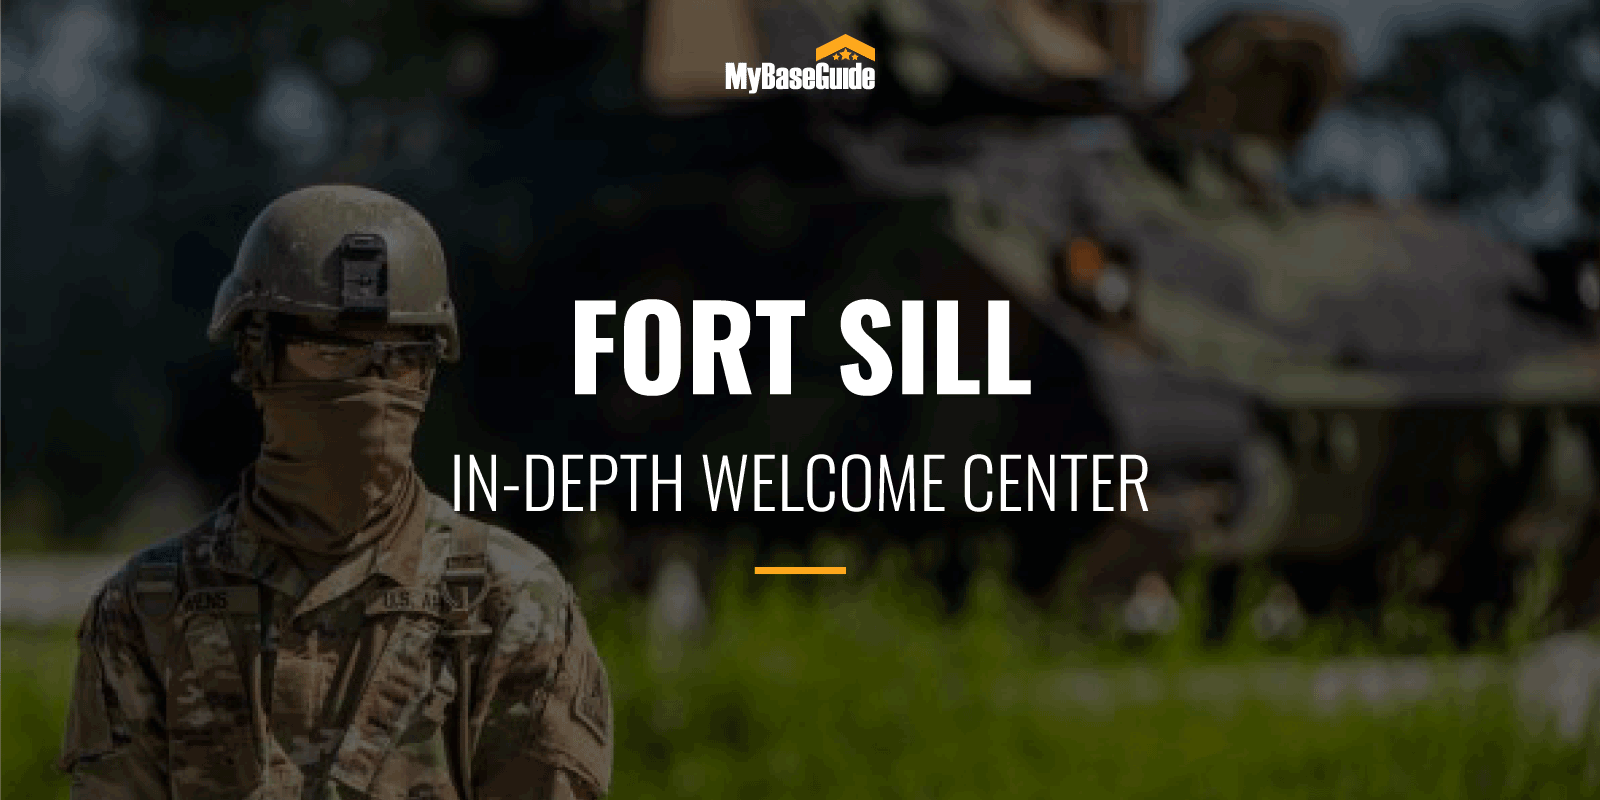 Fort Sill In-Depth Welcome Center